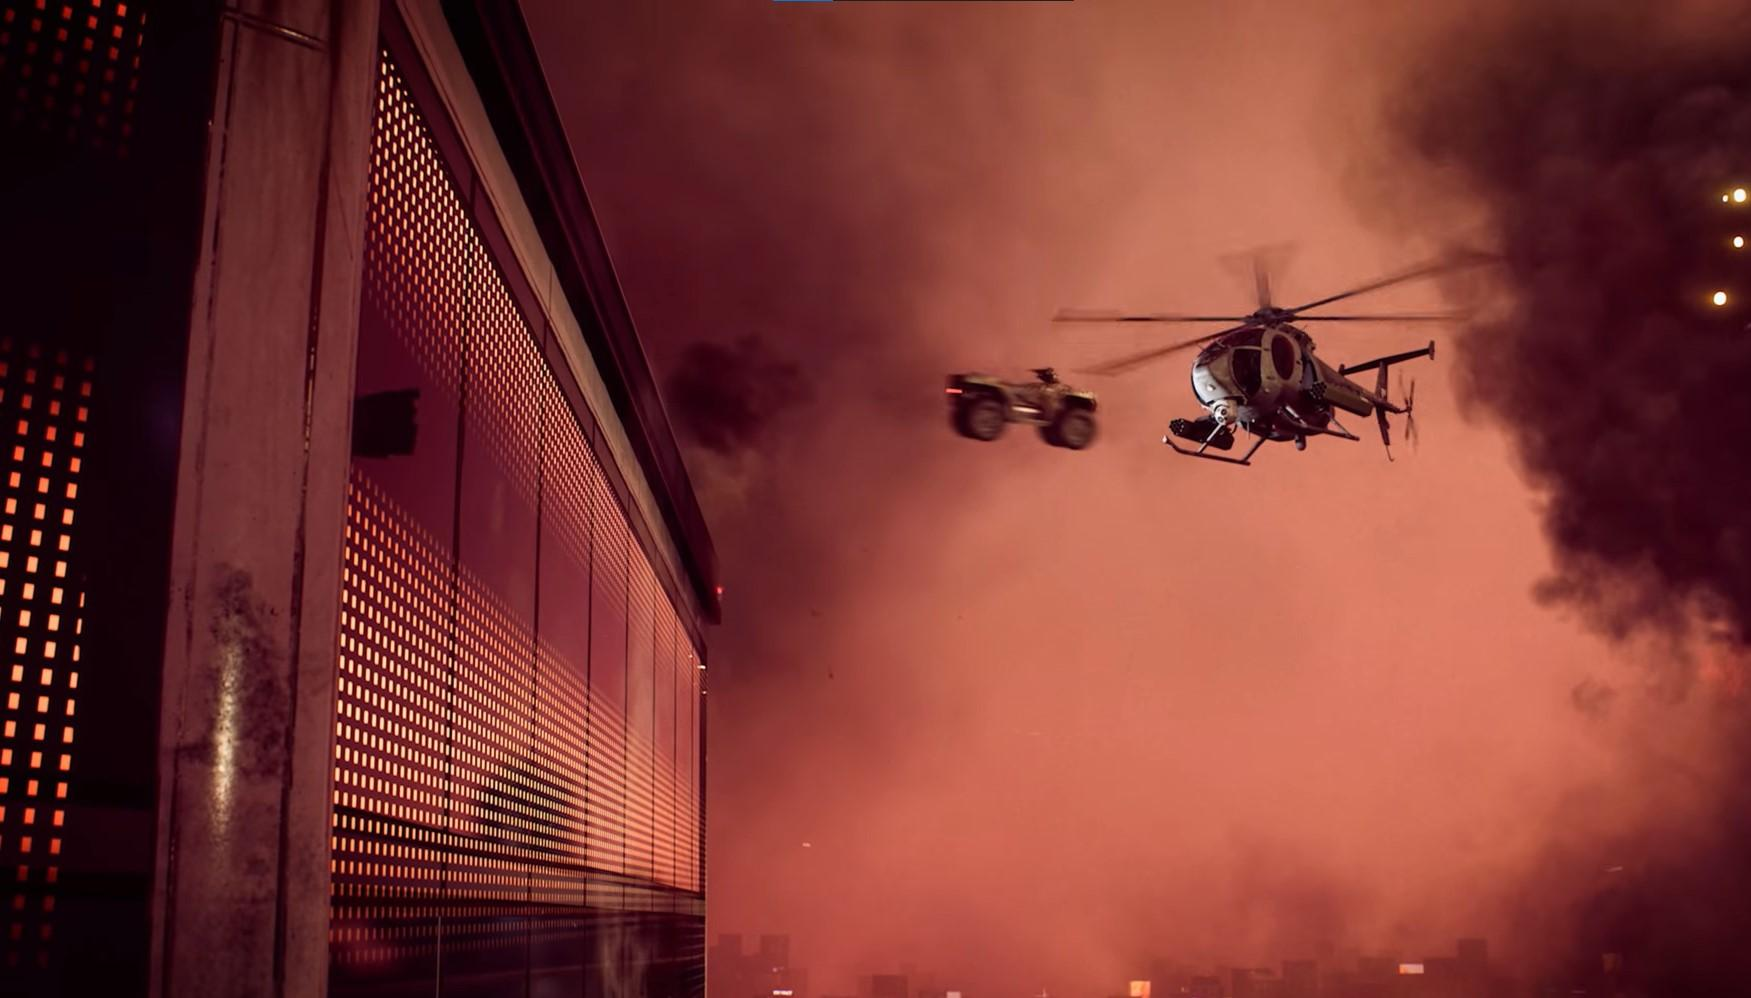 Battlefield 2042's trailer is filled with the game's best and most memorable moments